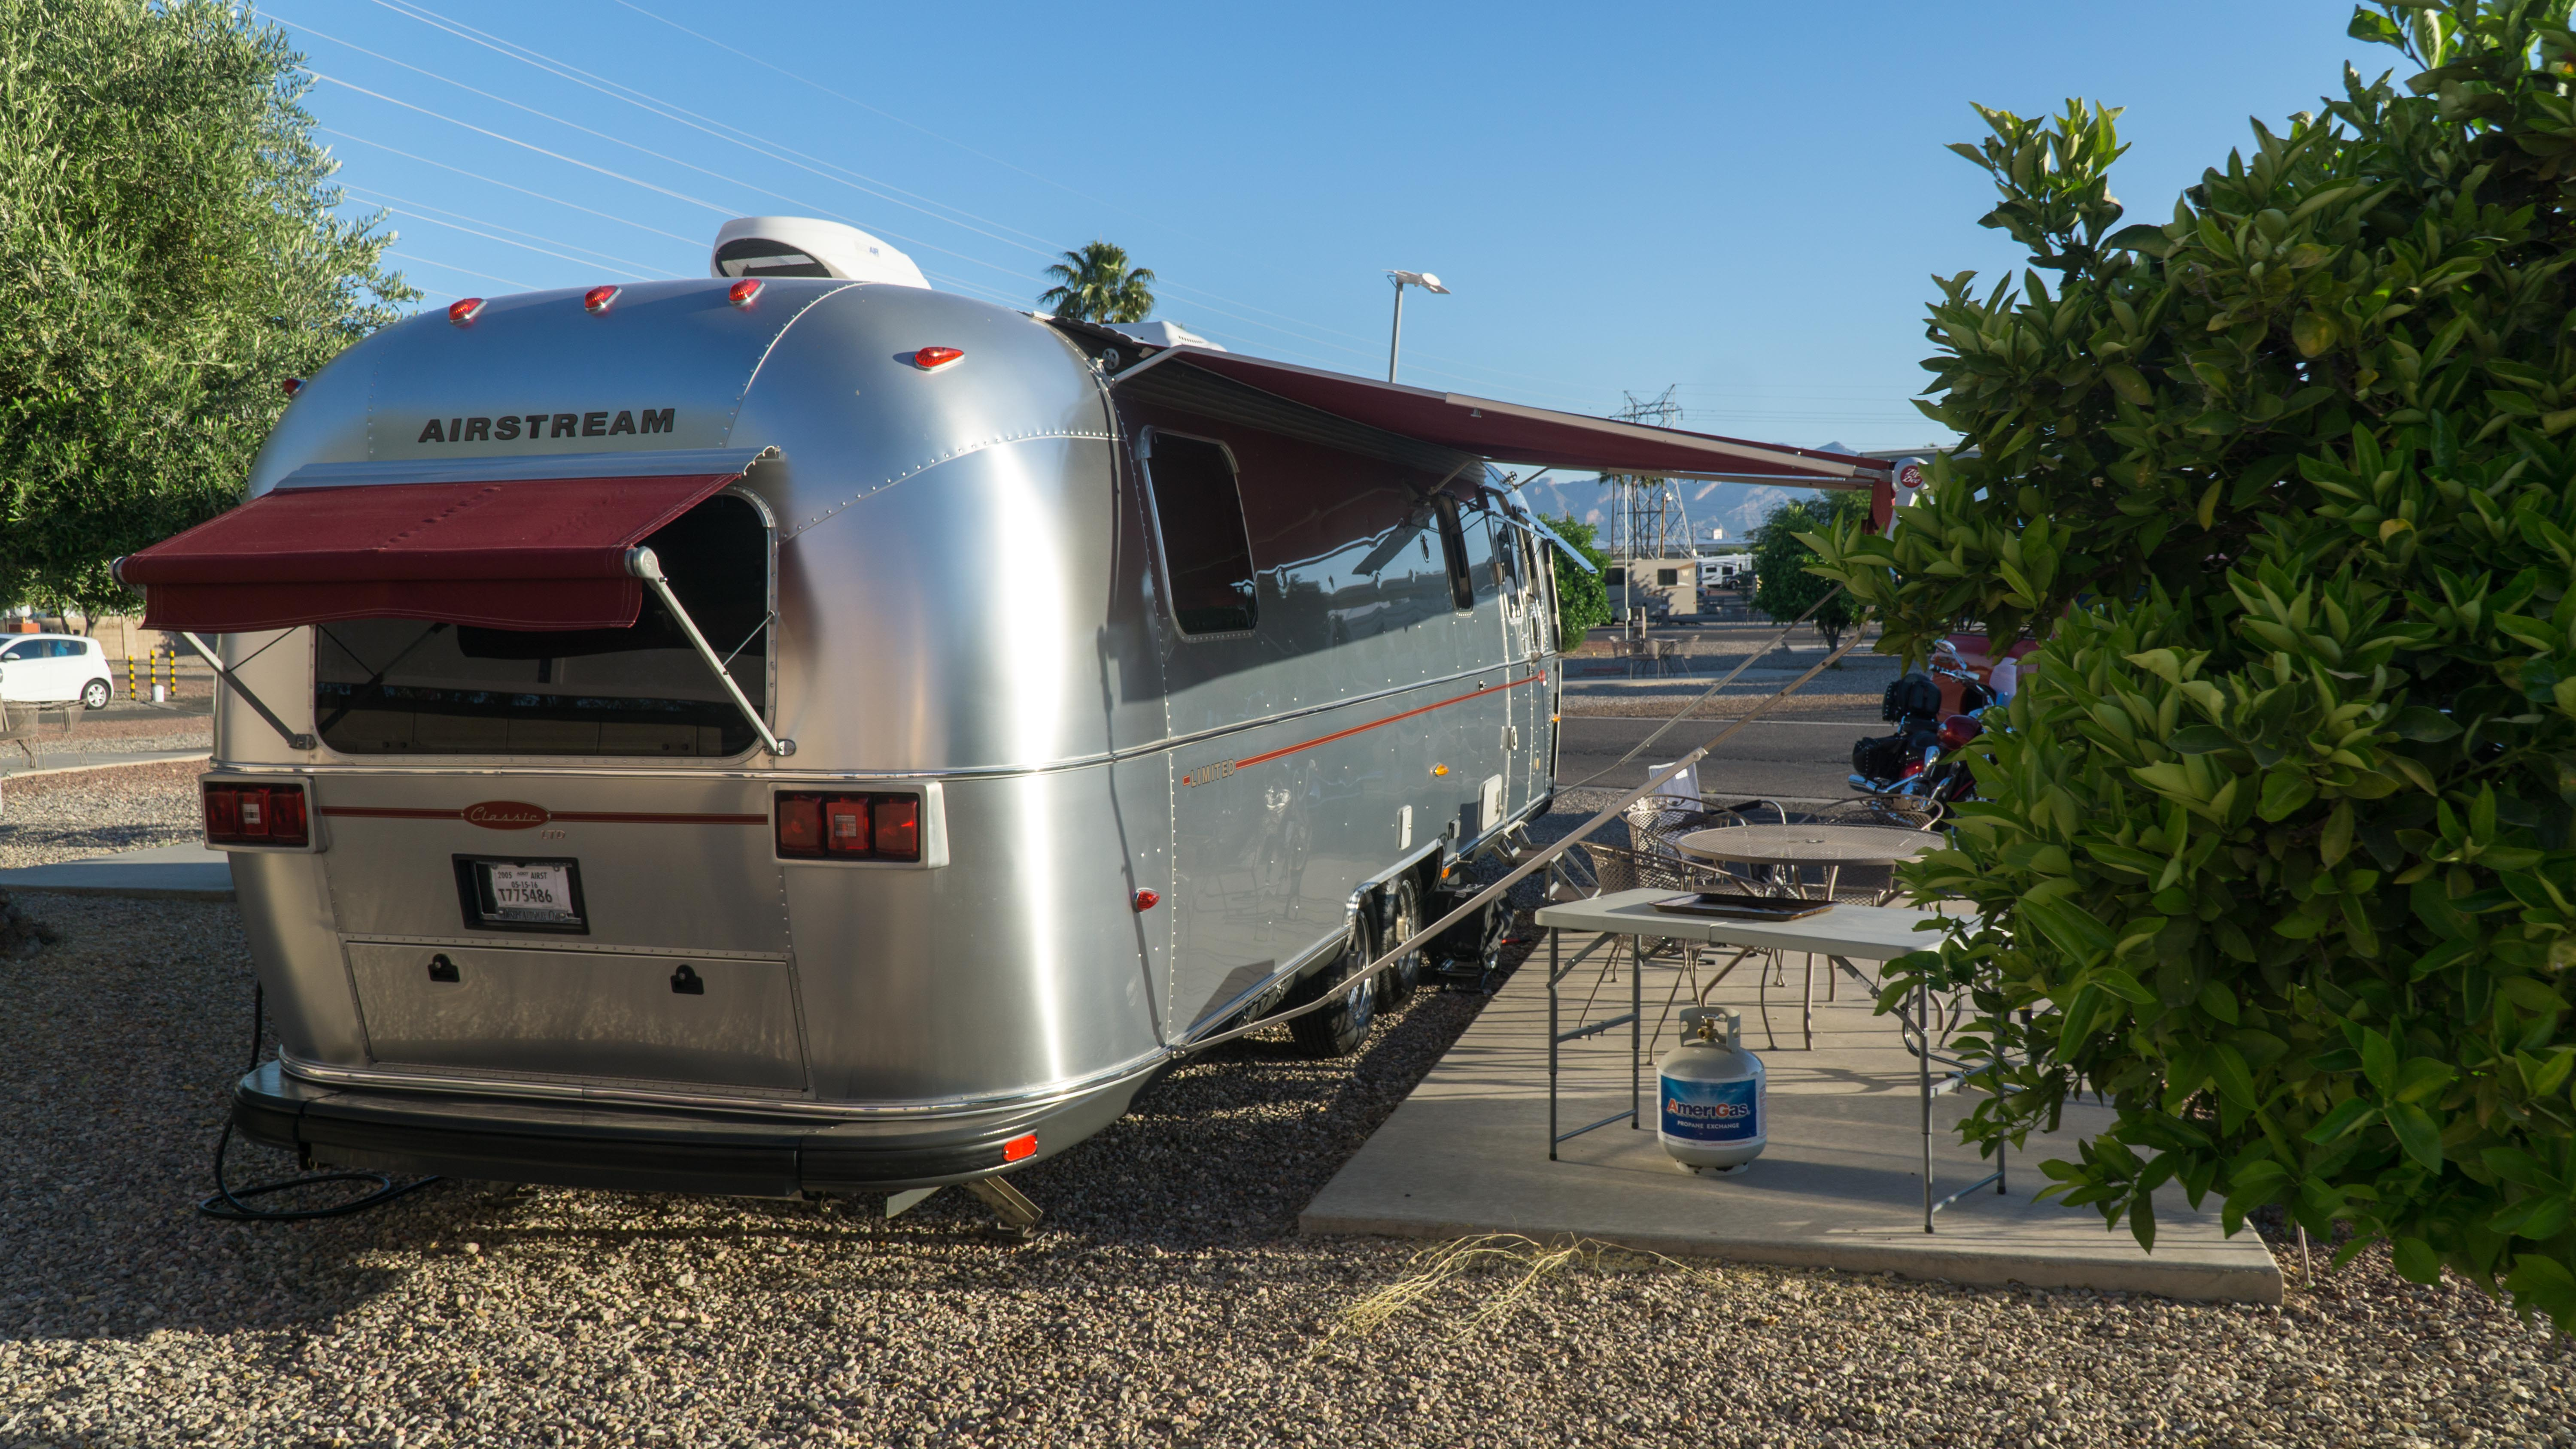 The downside of living in a 200 sqft Airstream